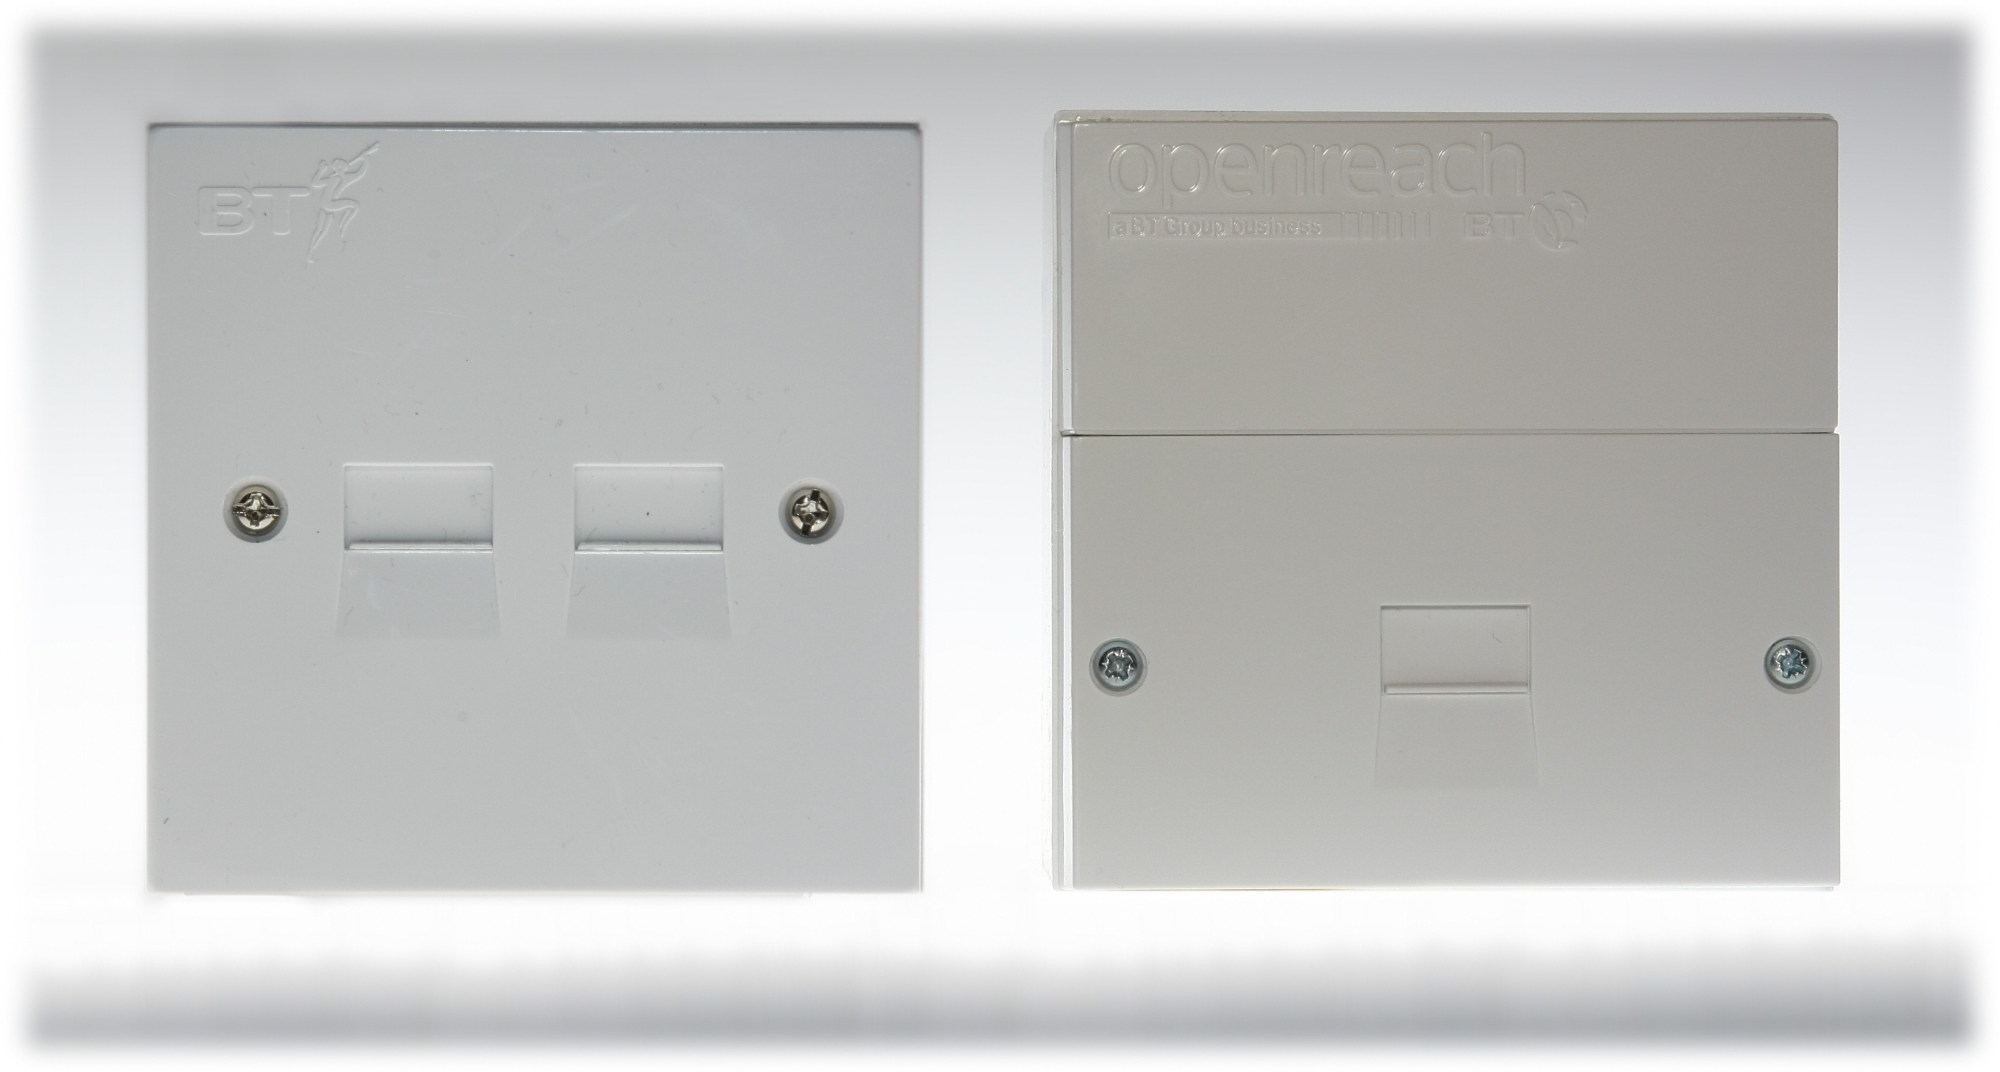 hight resolution of bt nte5 and non split faceplates